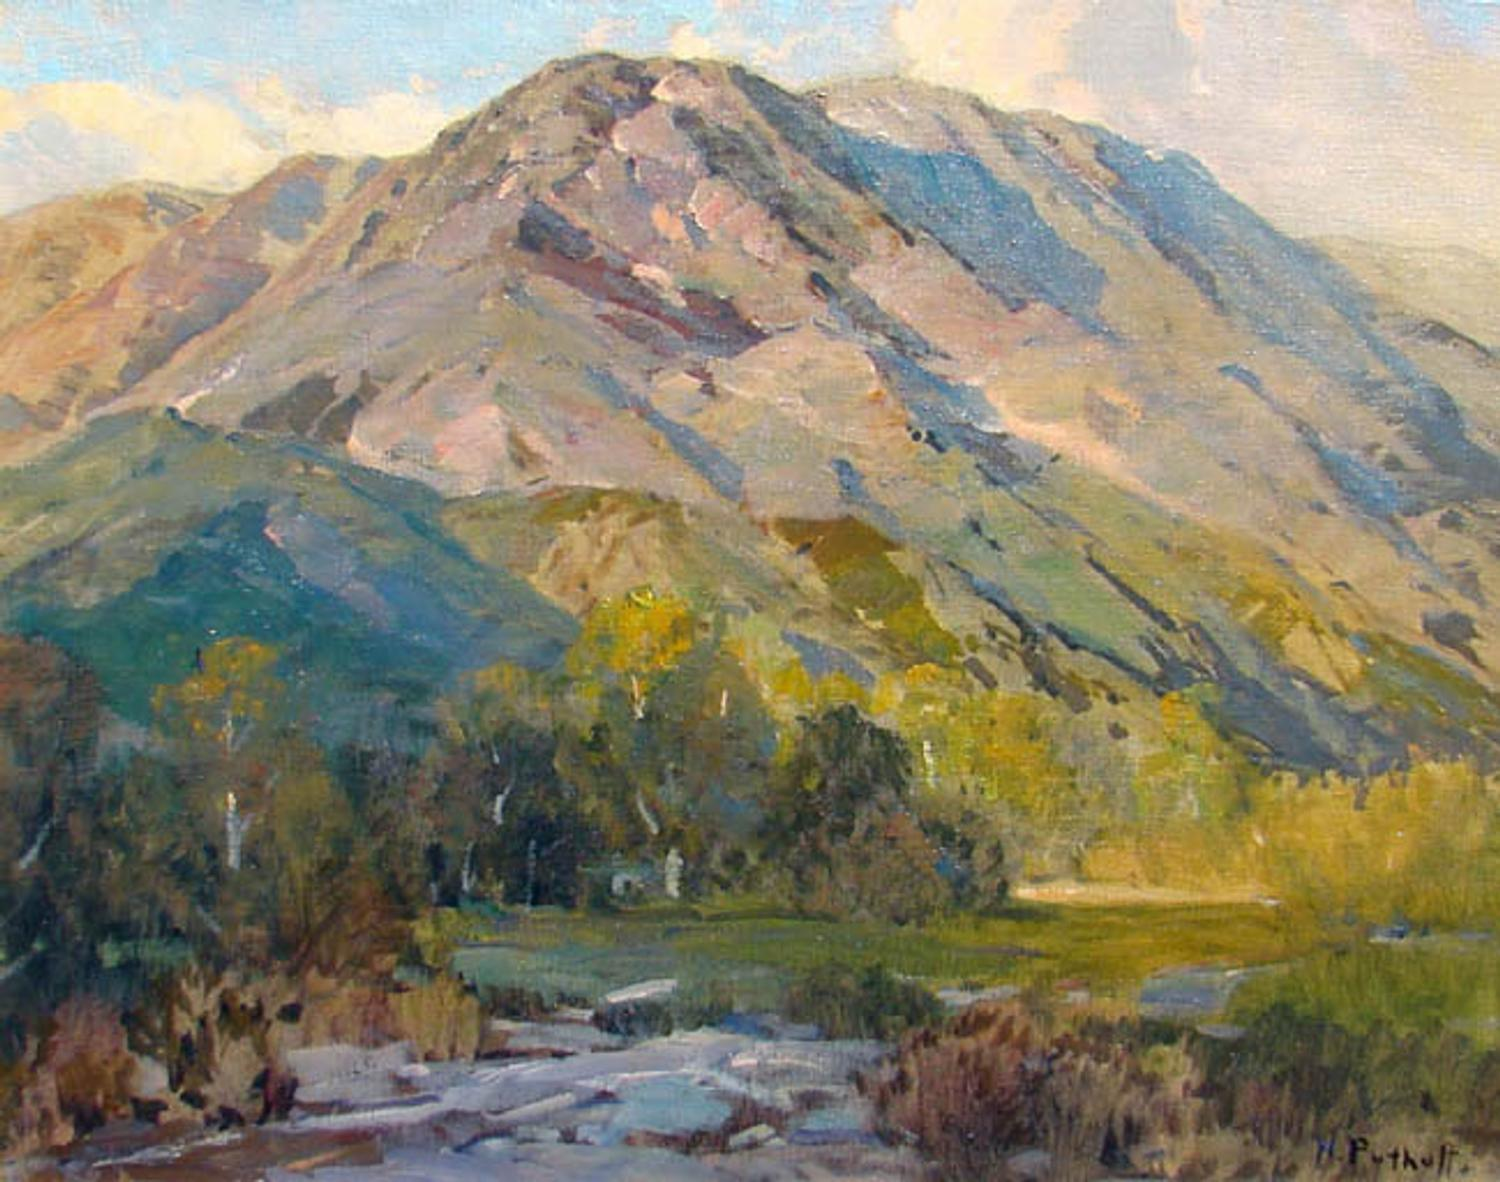 The Landscapes Of Hanson Duvall Puthuff Artfixdaily News